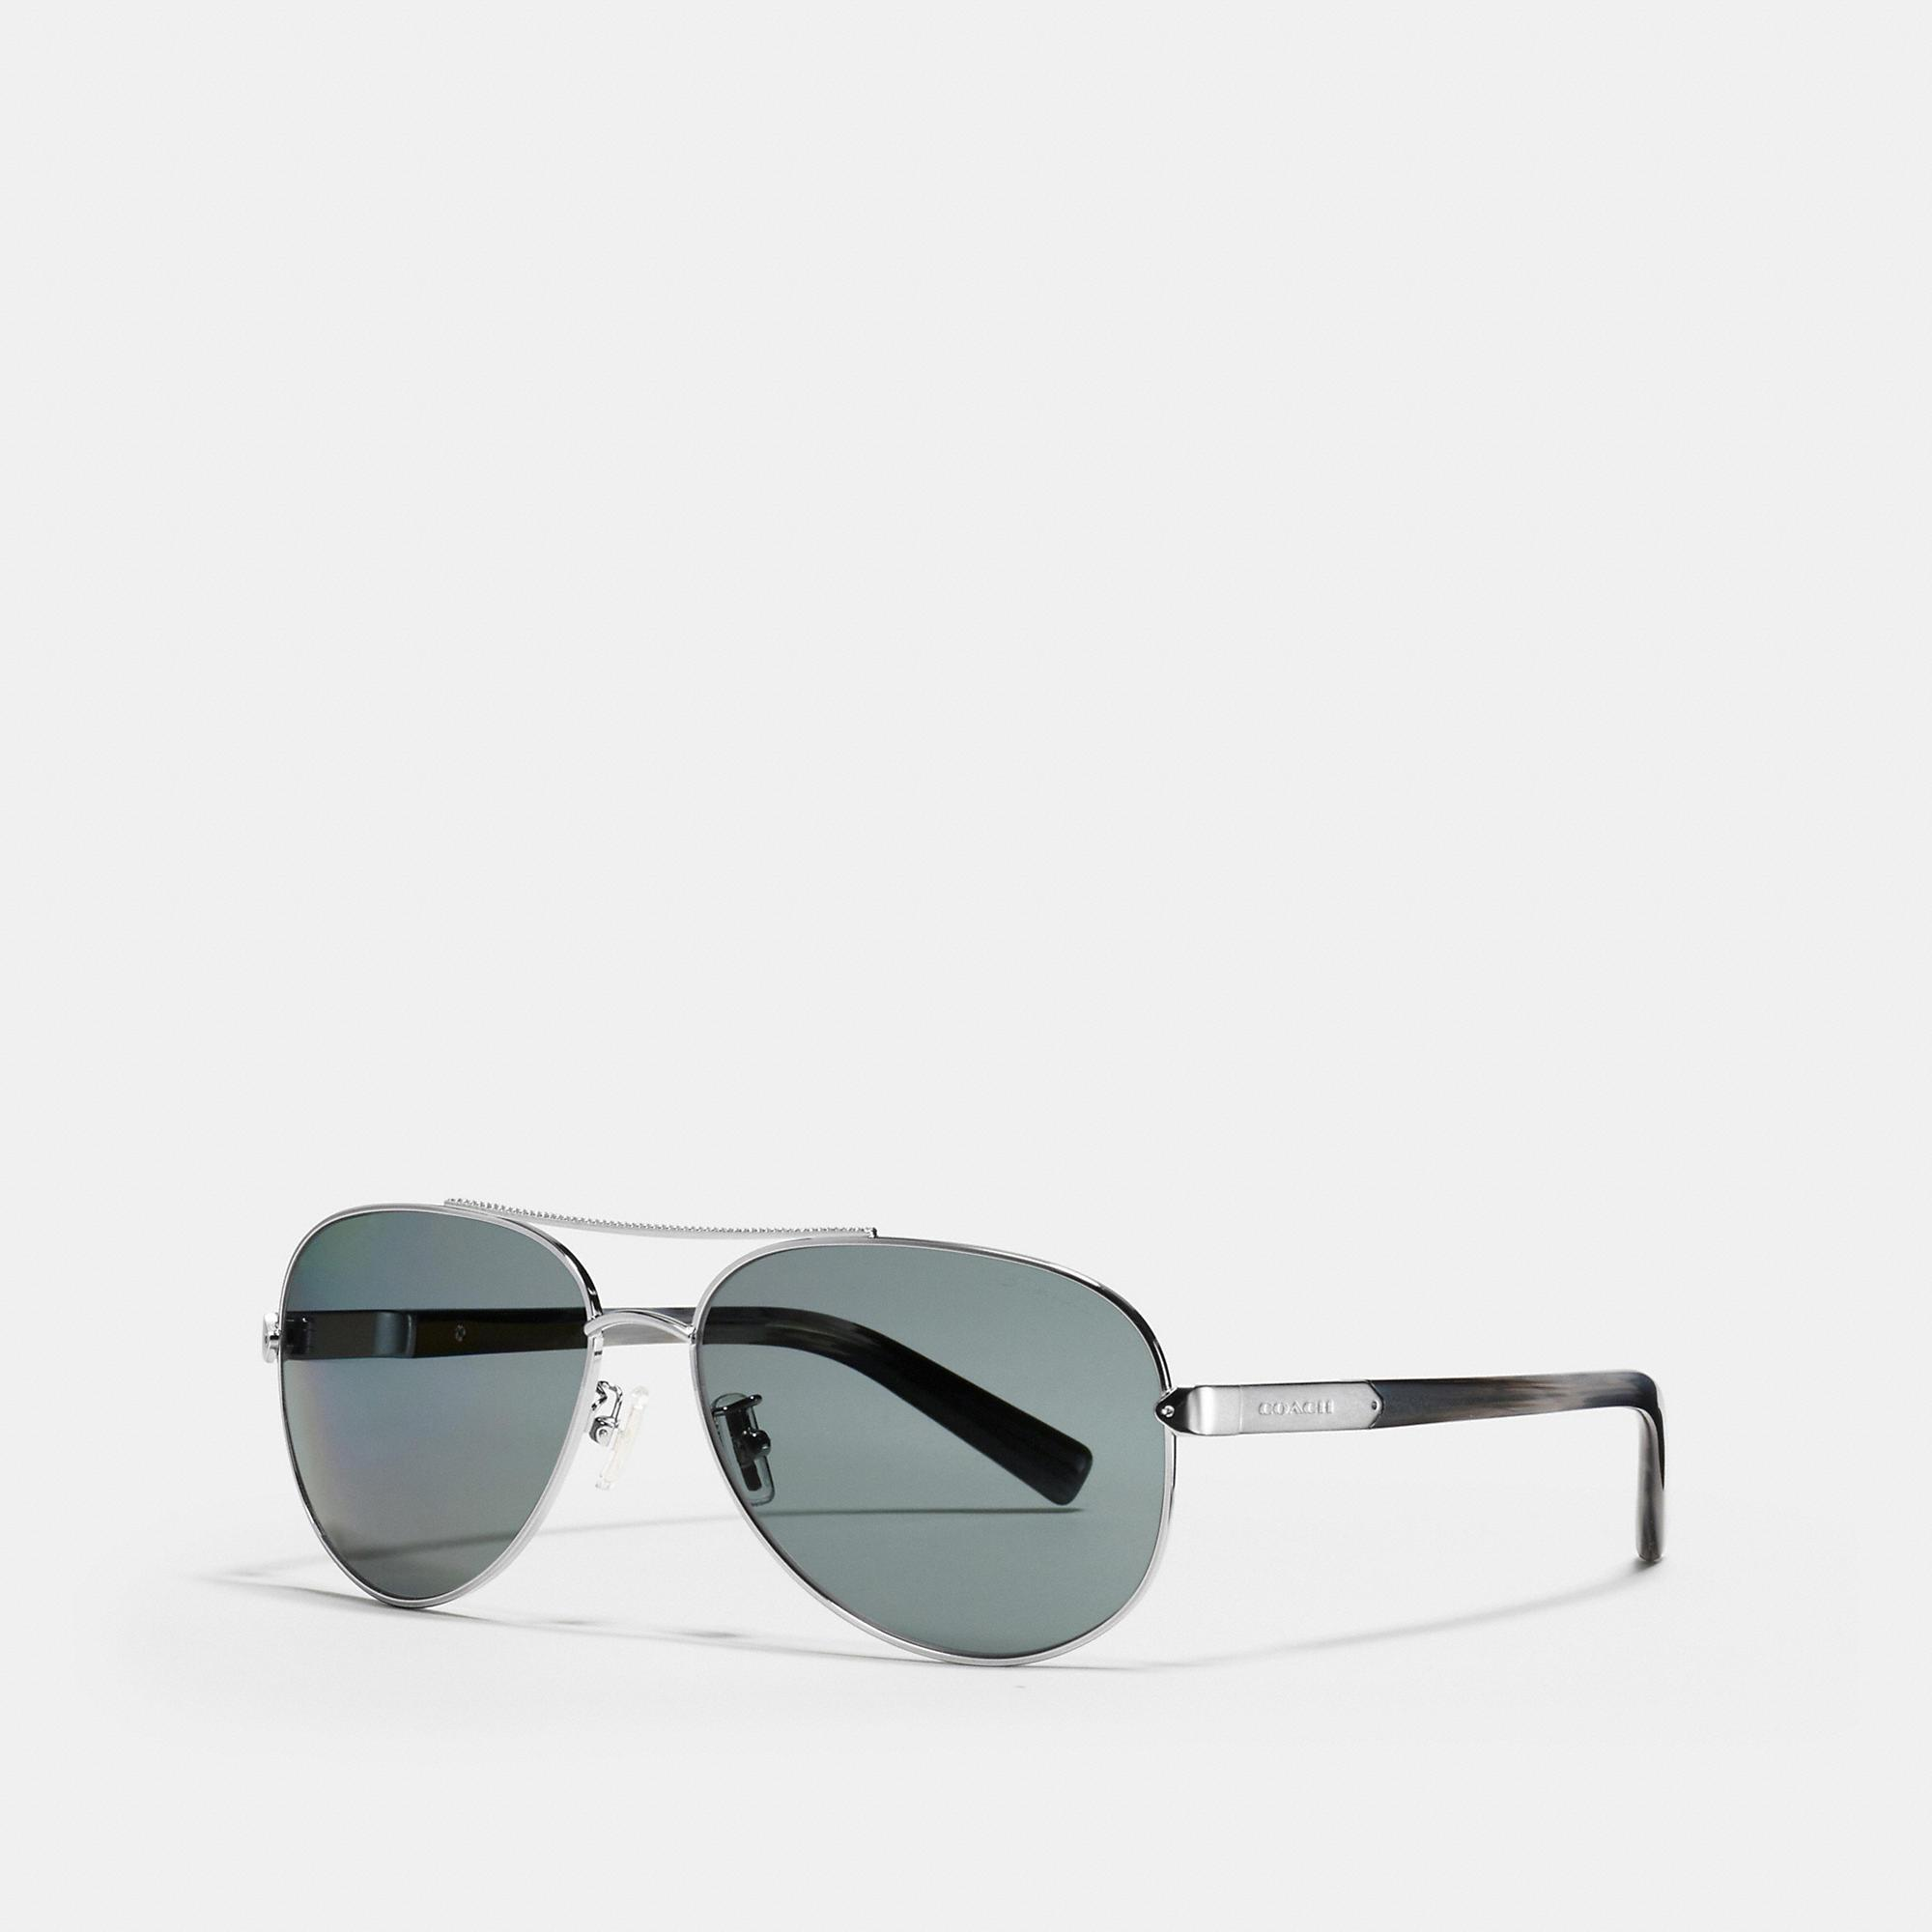 Coach Tag Temple Pilot Sunglasses In Gunmetal/grey Horn